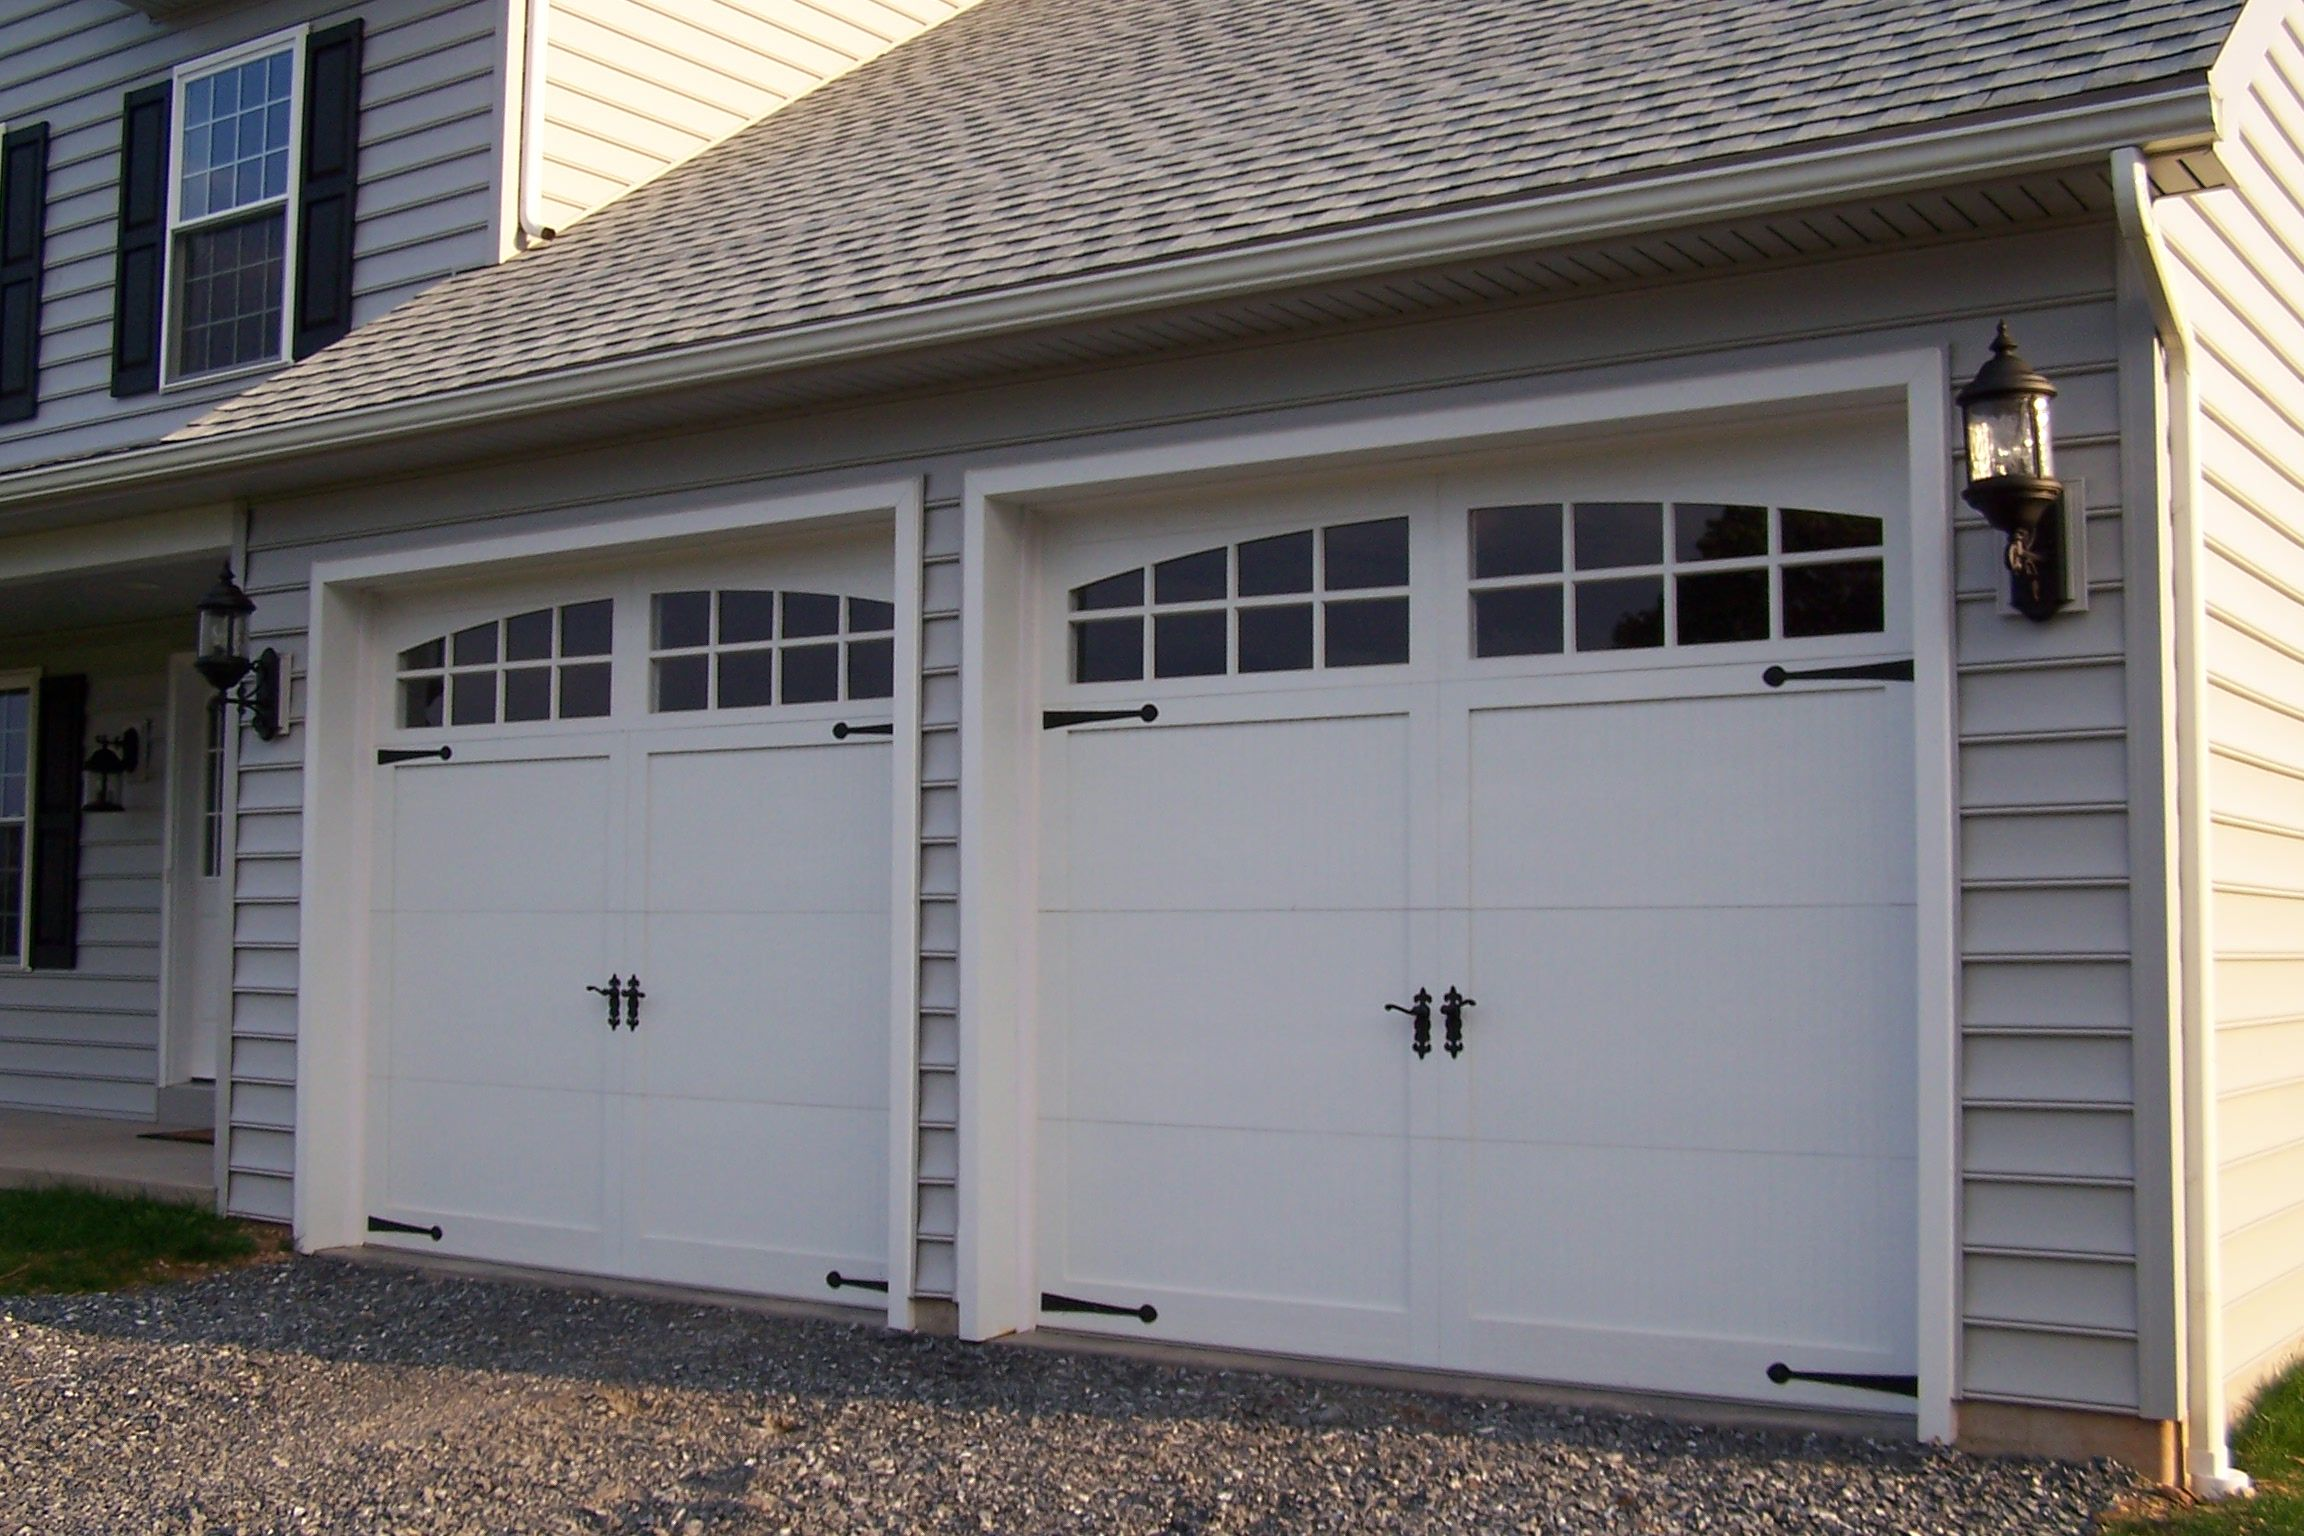 set garage insert door cars in snap stockton clopay best inserts photo window windows plastic x